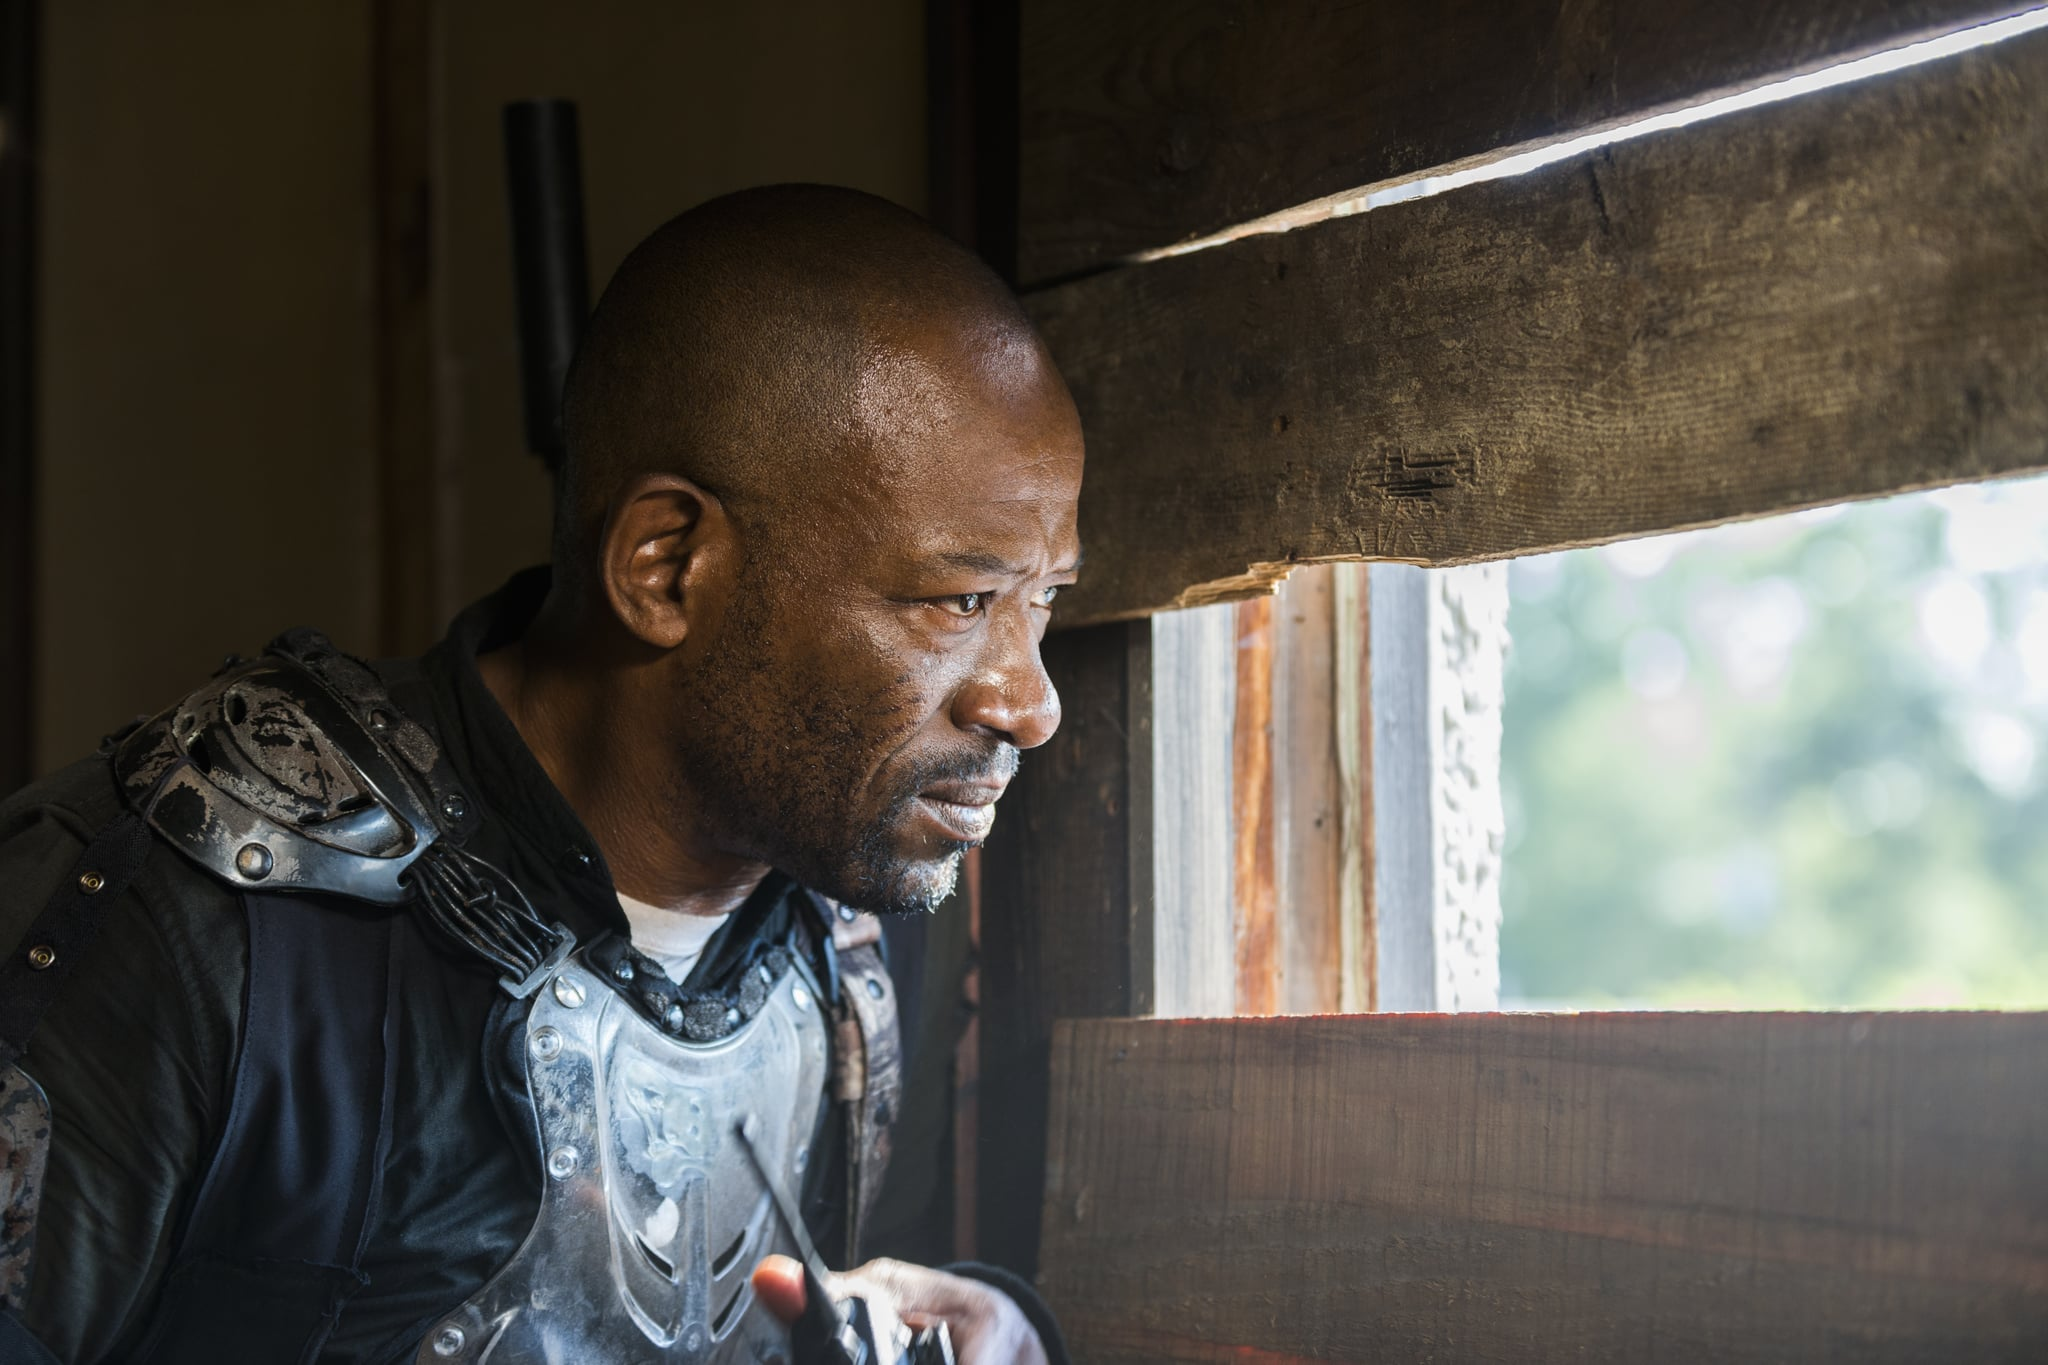 The Walking Dead's Morgan will join Fear the Walking Dead